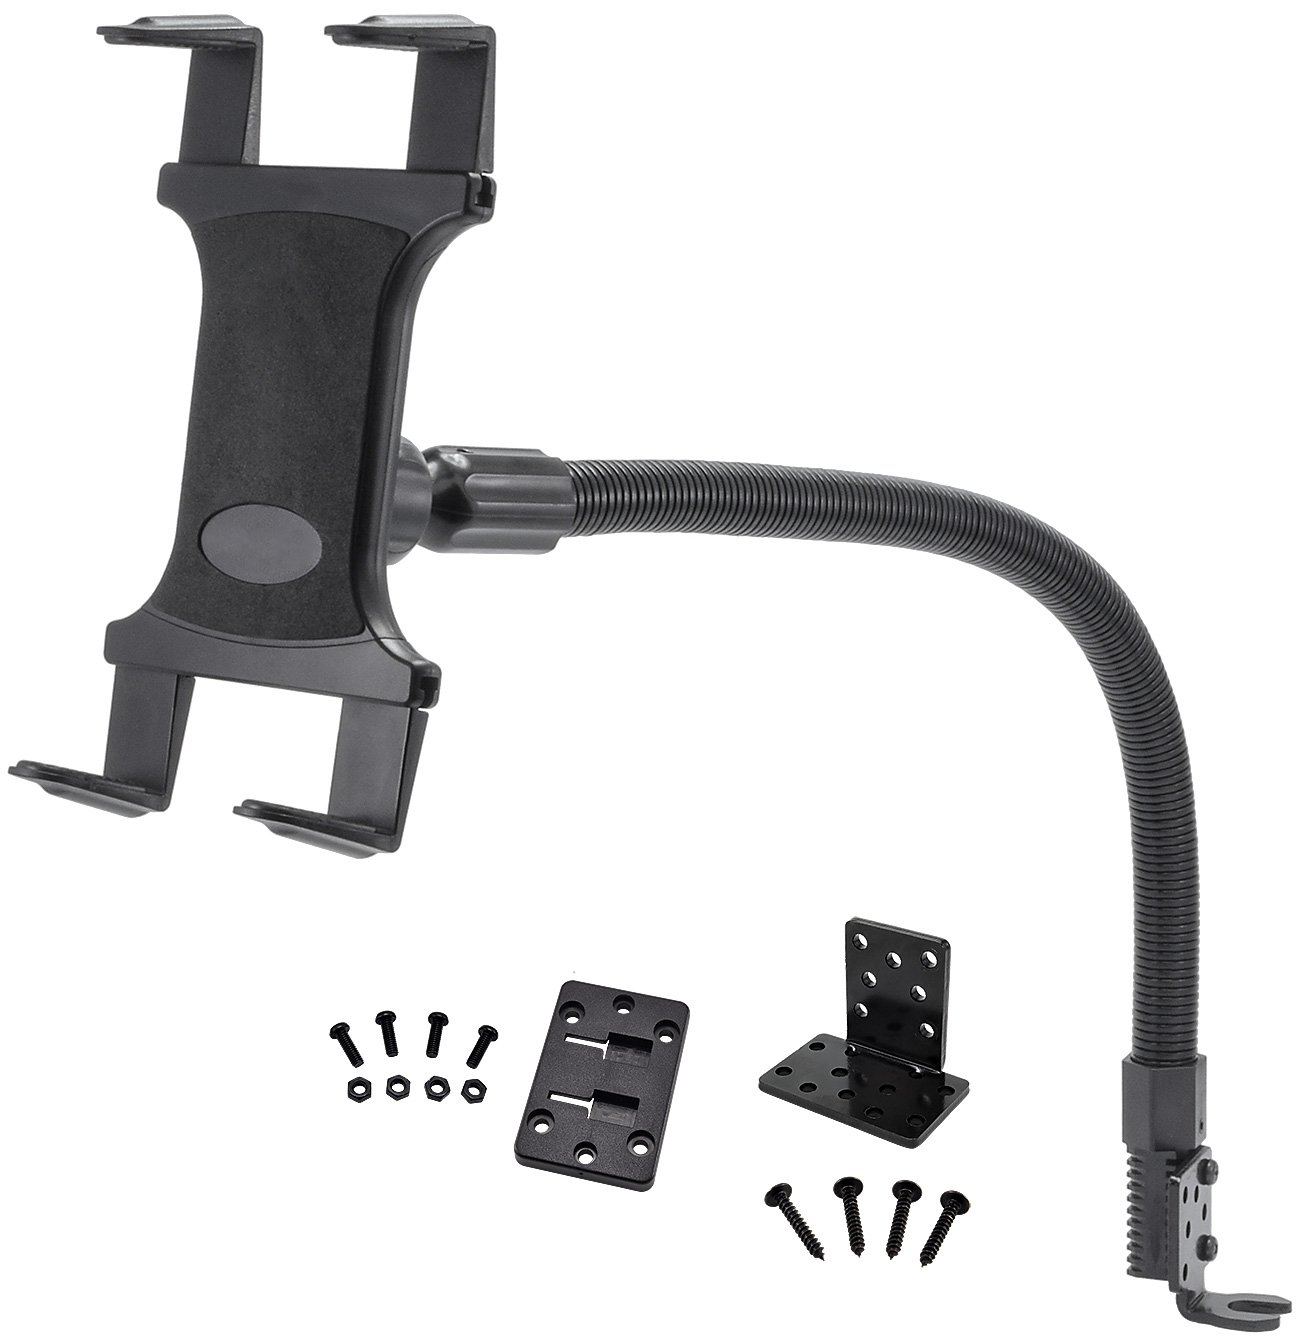 Tablet Mount for Car and Truck - TACKFORM [ELD Mount] Industrial 22 Inch Gooseneck Seat Rail Device Holder for Taxi, Van, Vehicle, Semi. Cradle for all devices including iPad, Galaxy, Surface Pro … by Tackform Solutions (Image #3)